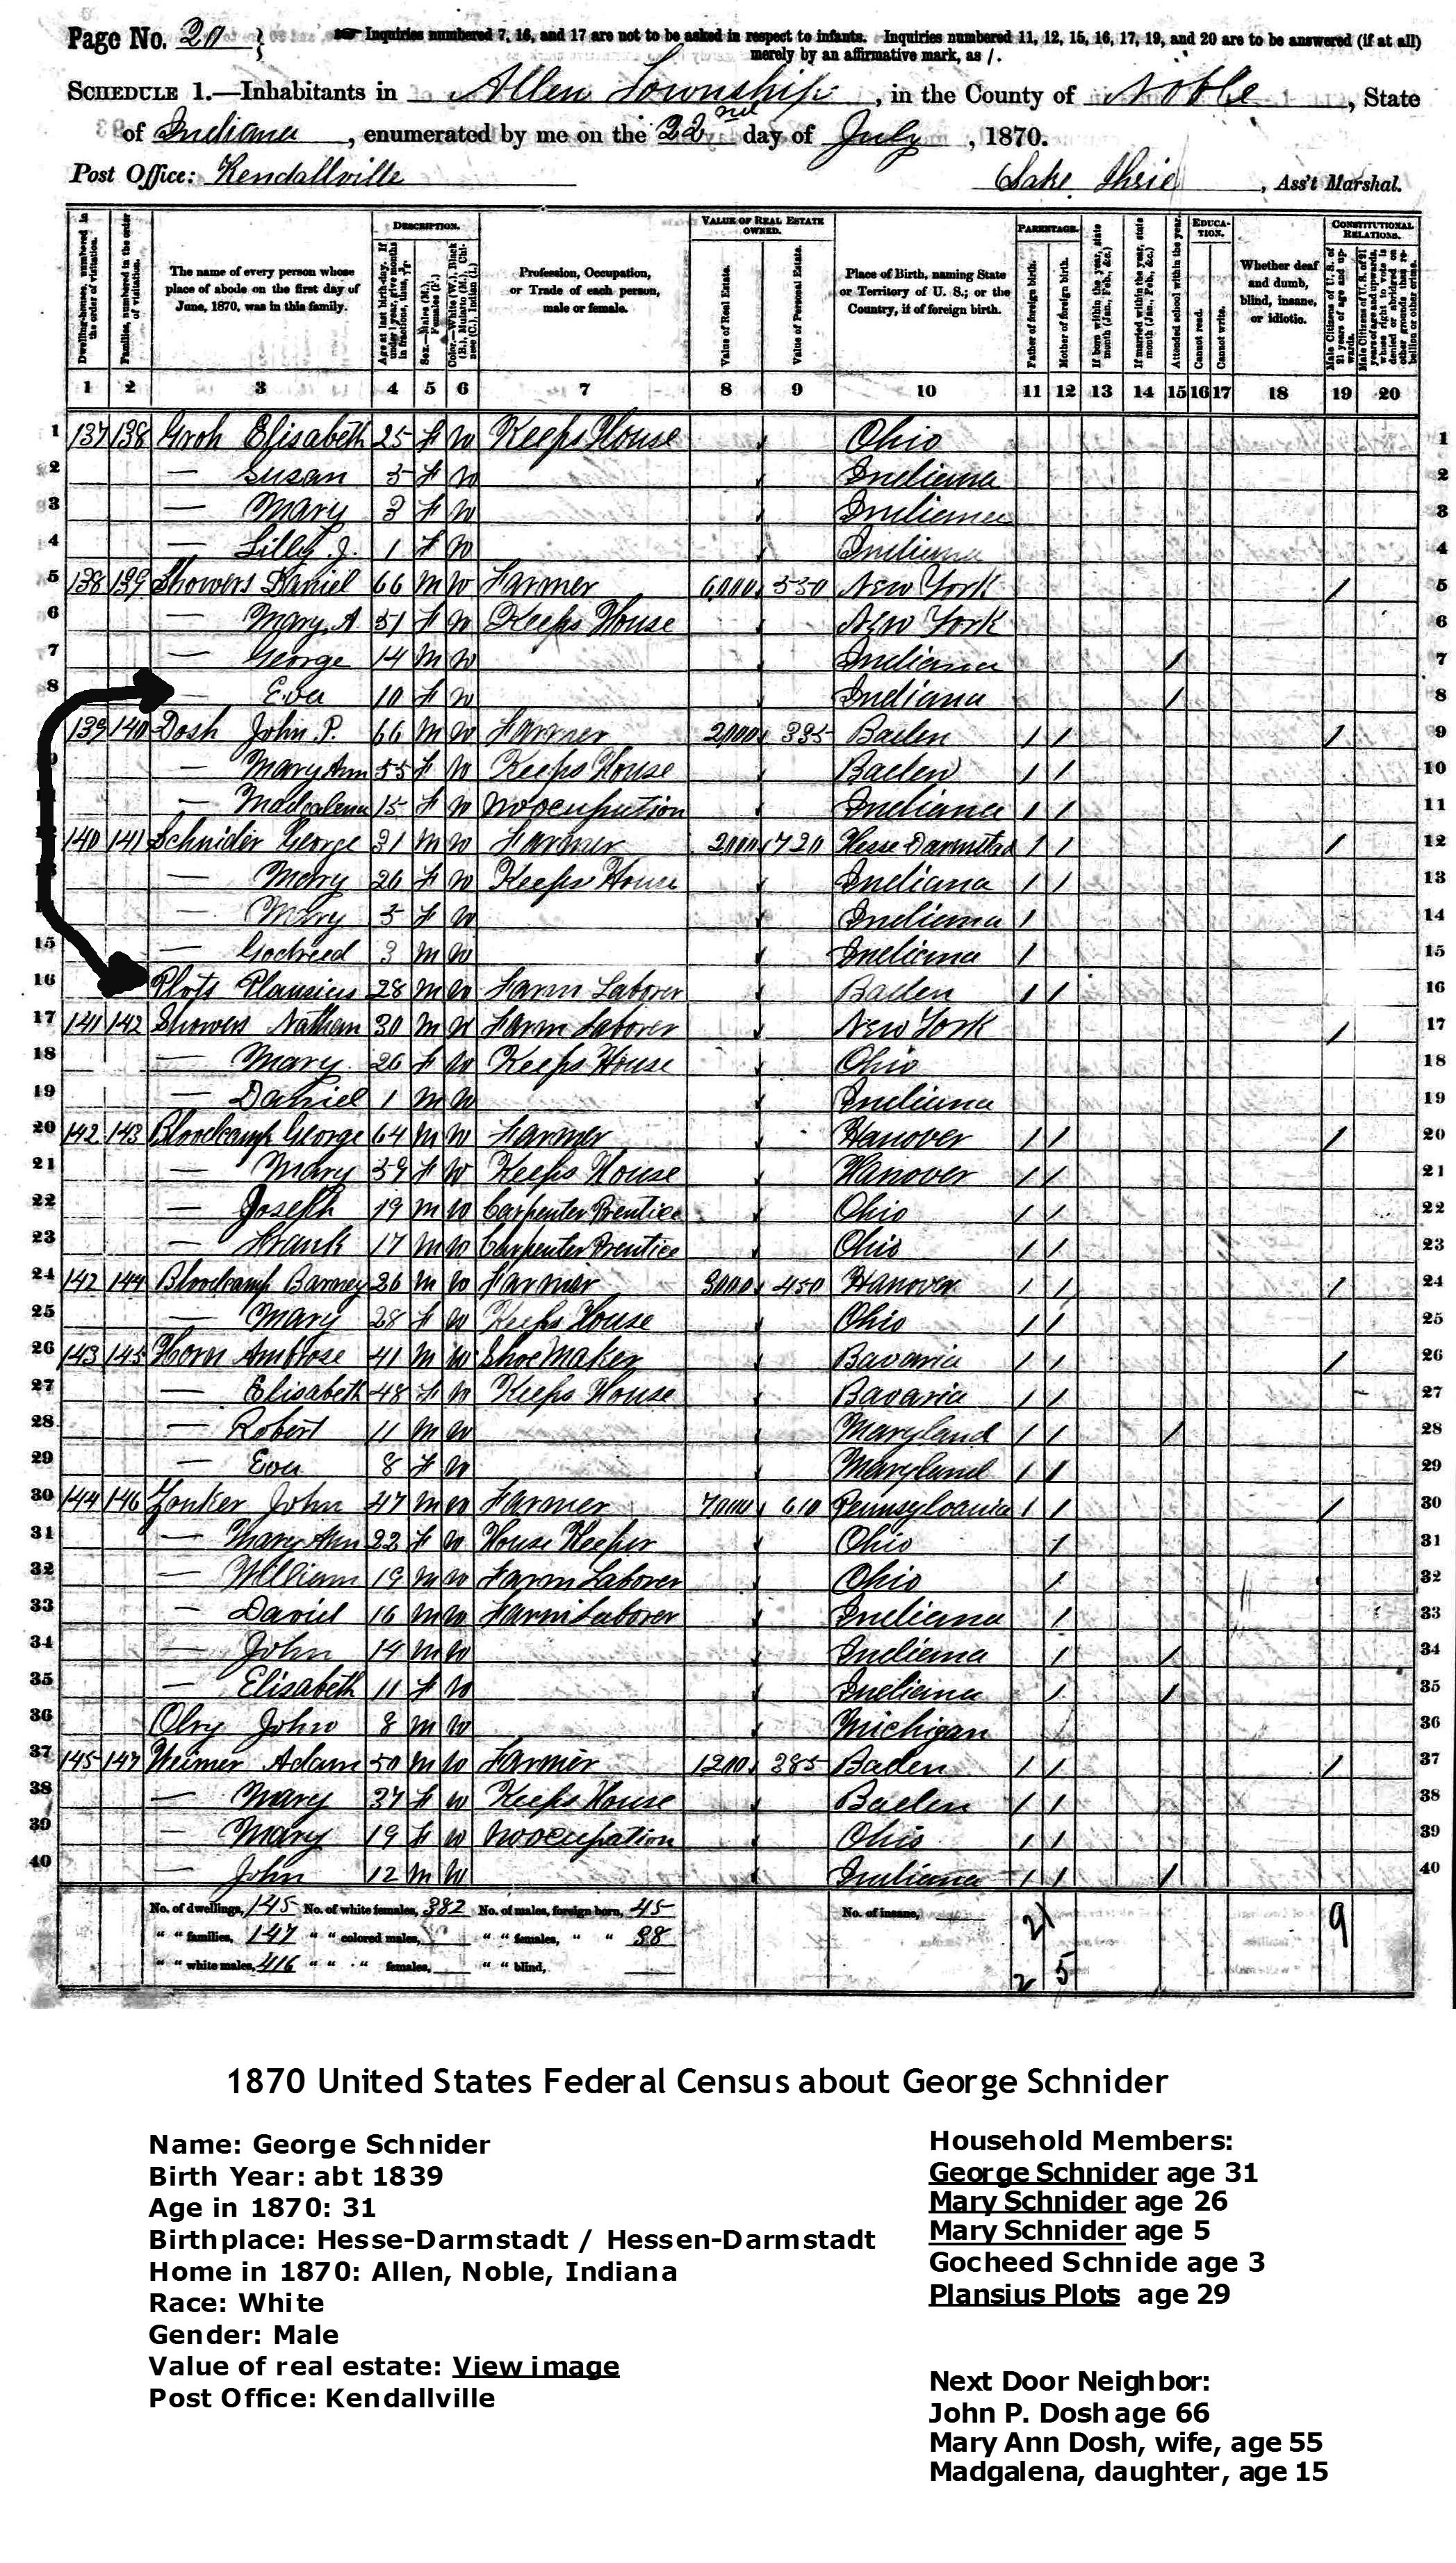 georgeschneider1870census.jpg